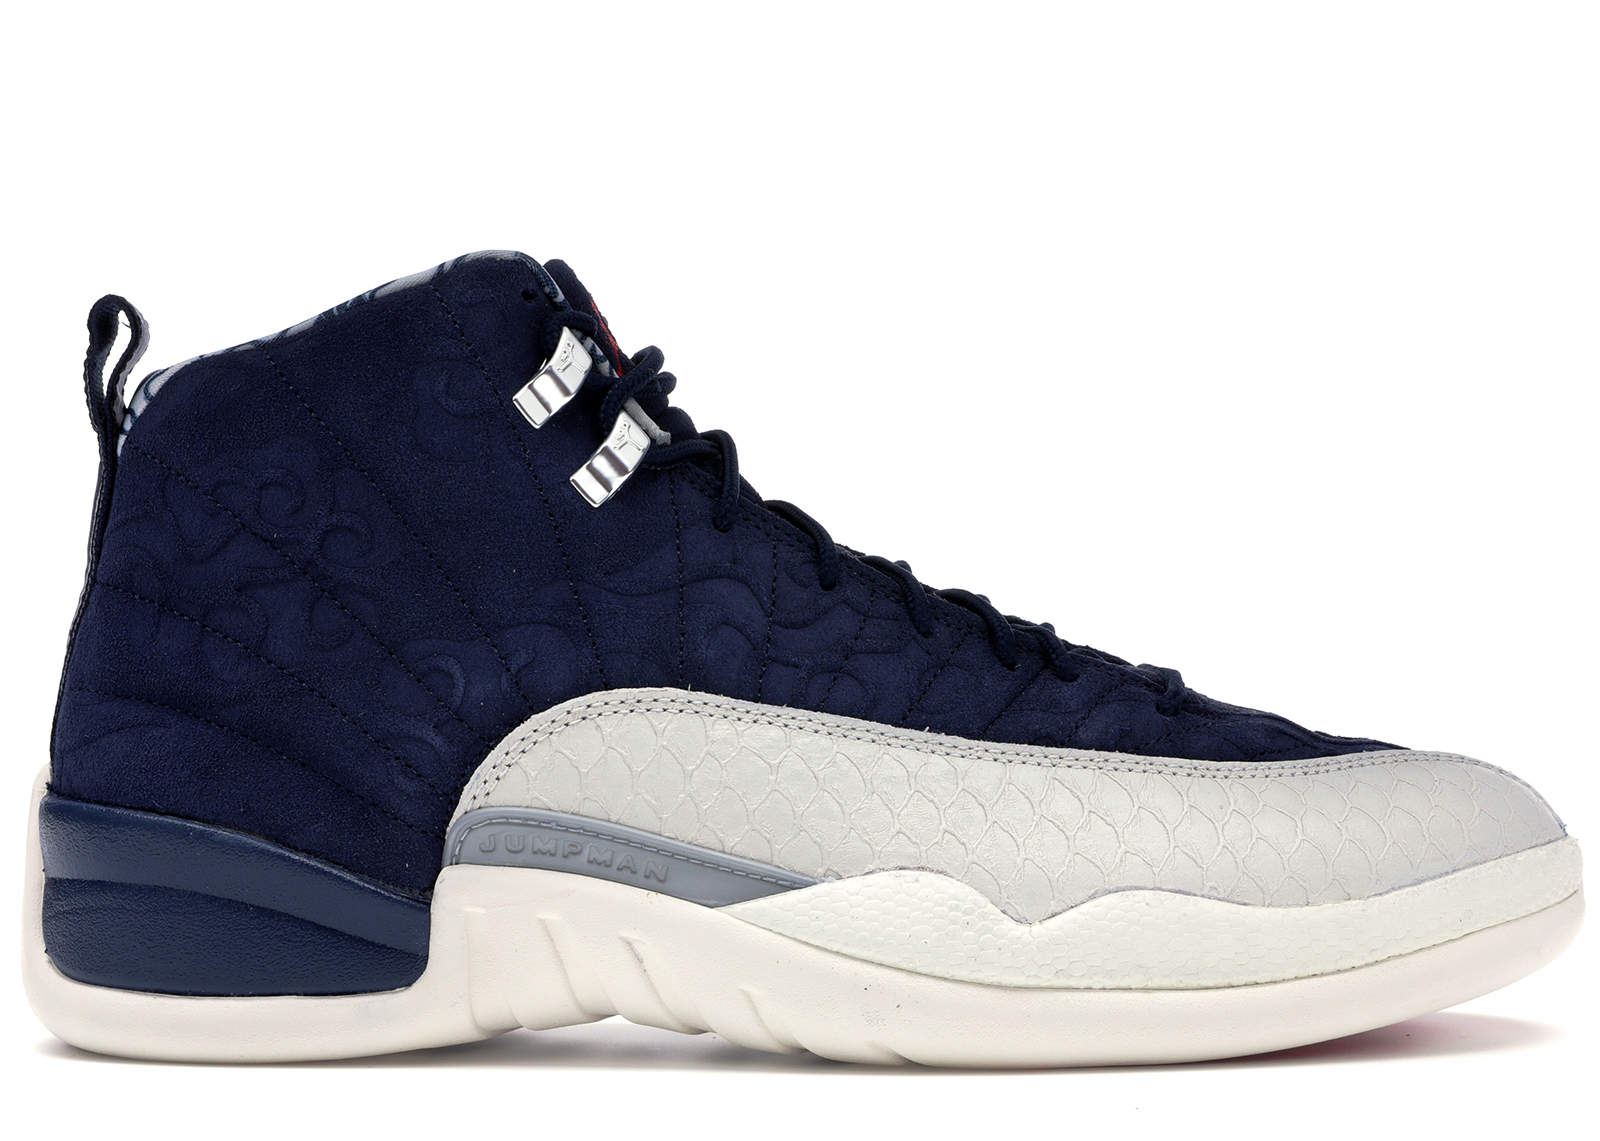 a0ad0640ee9 ... promo code for buy air jordan 12 shoes deadstock sneakers 0aca4 a4676